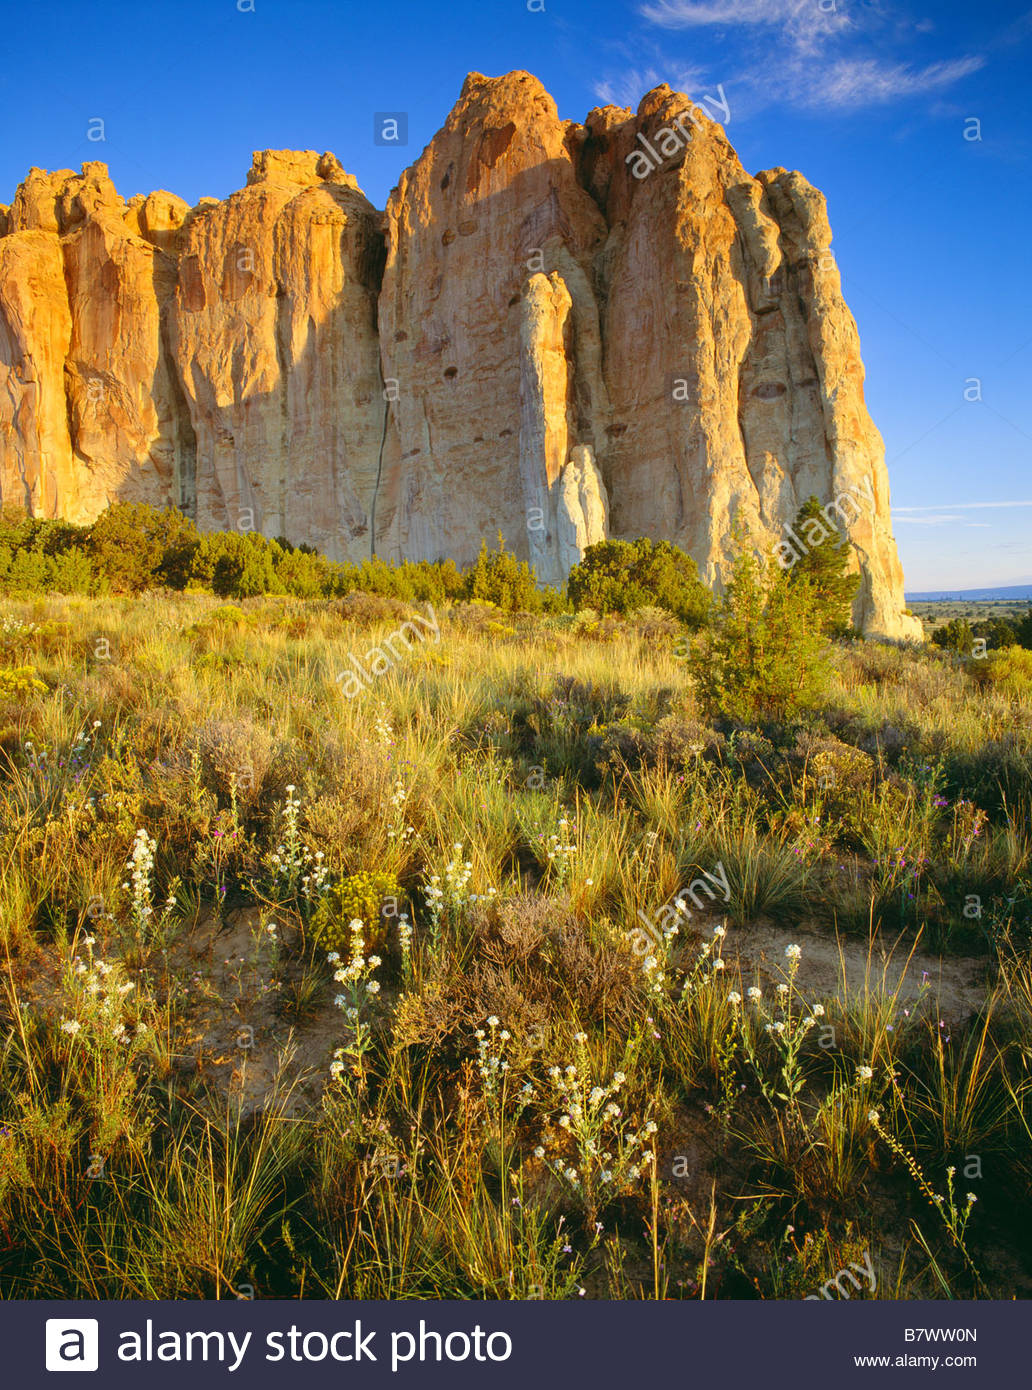 Inschrift Rock bei Sonnenaufgang El Morro National Monument New Mexico Stockbild